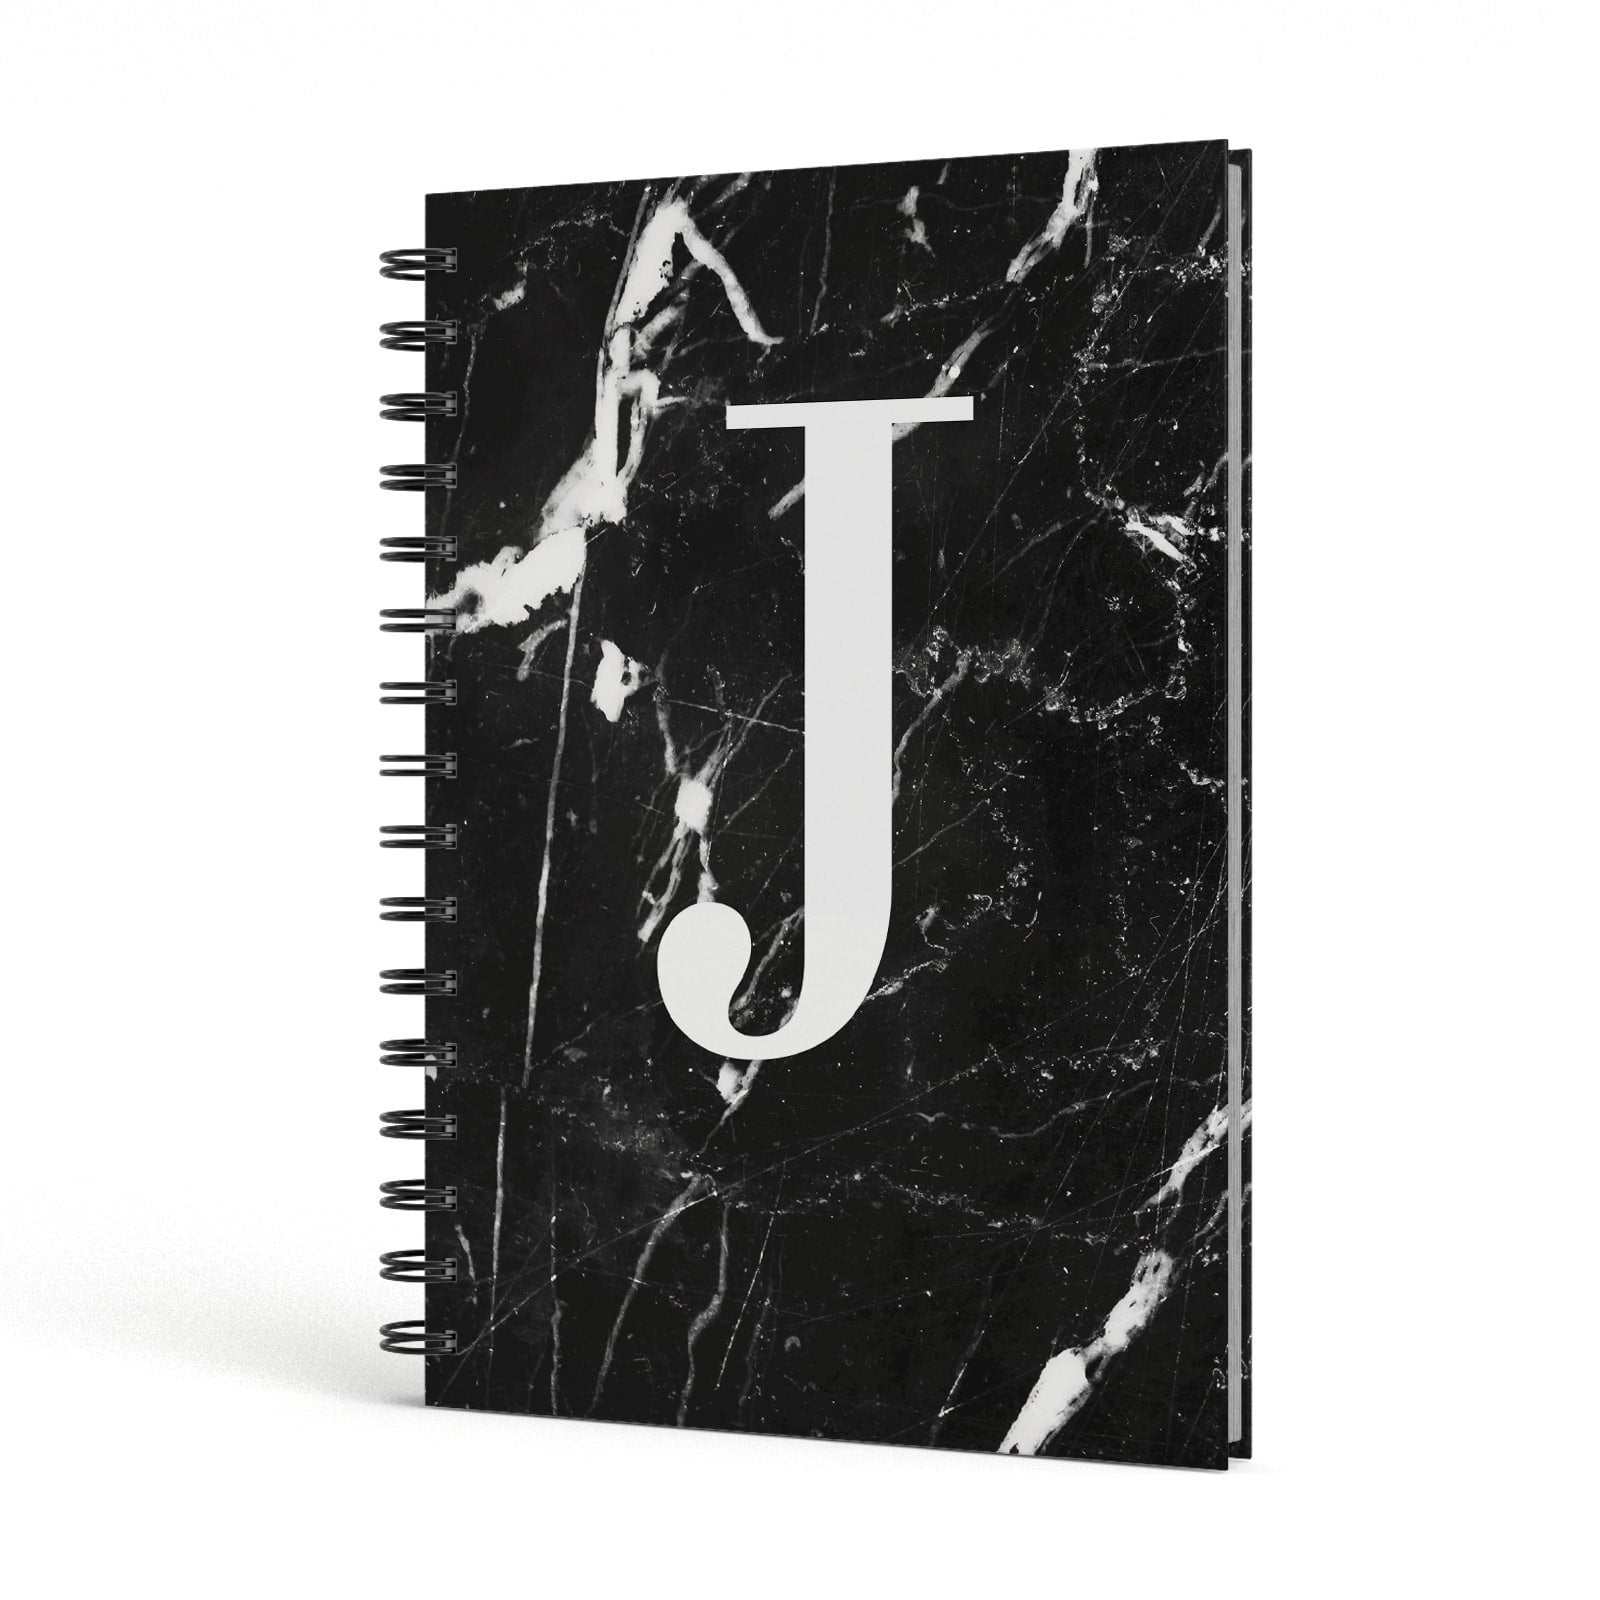 Marble White Initial Personalised A5 Hardcover Notebook Side View